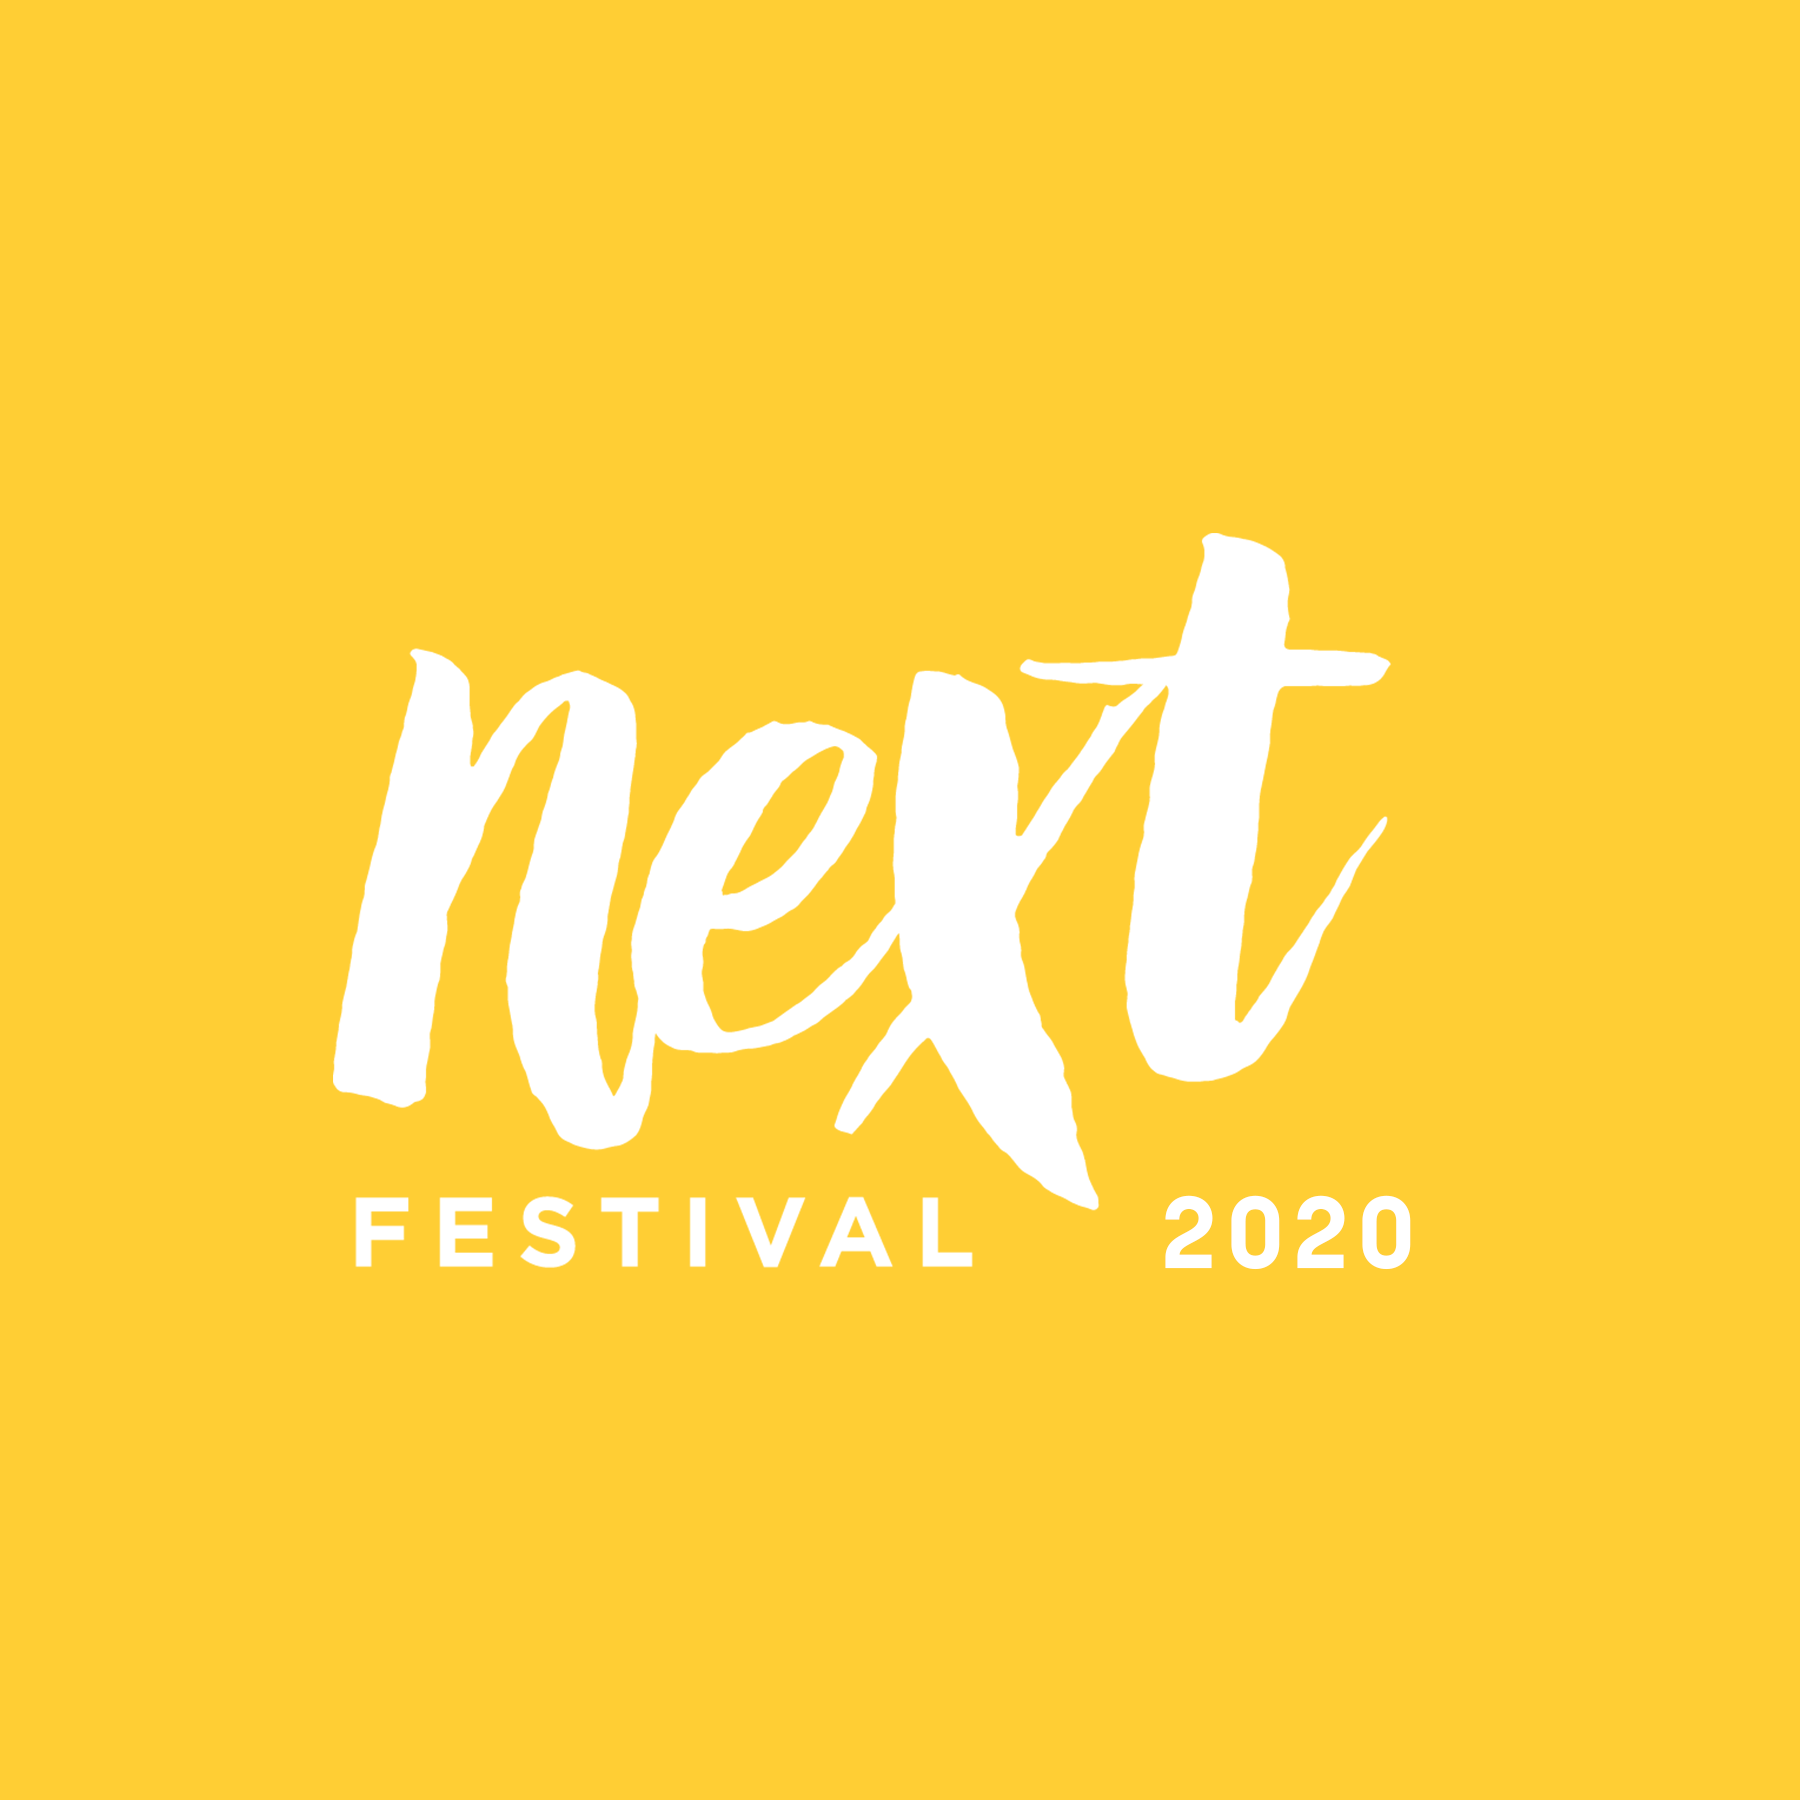 Next Festival 2020 NEXT 2020 — Theater Latté Da